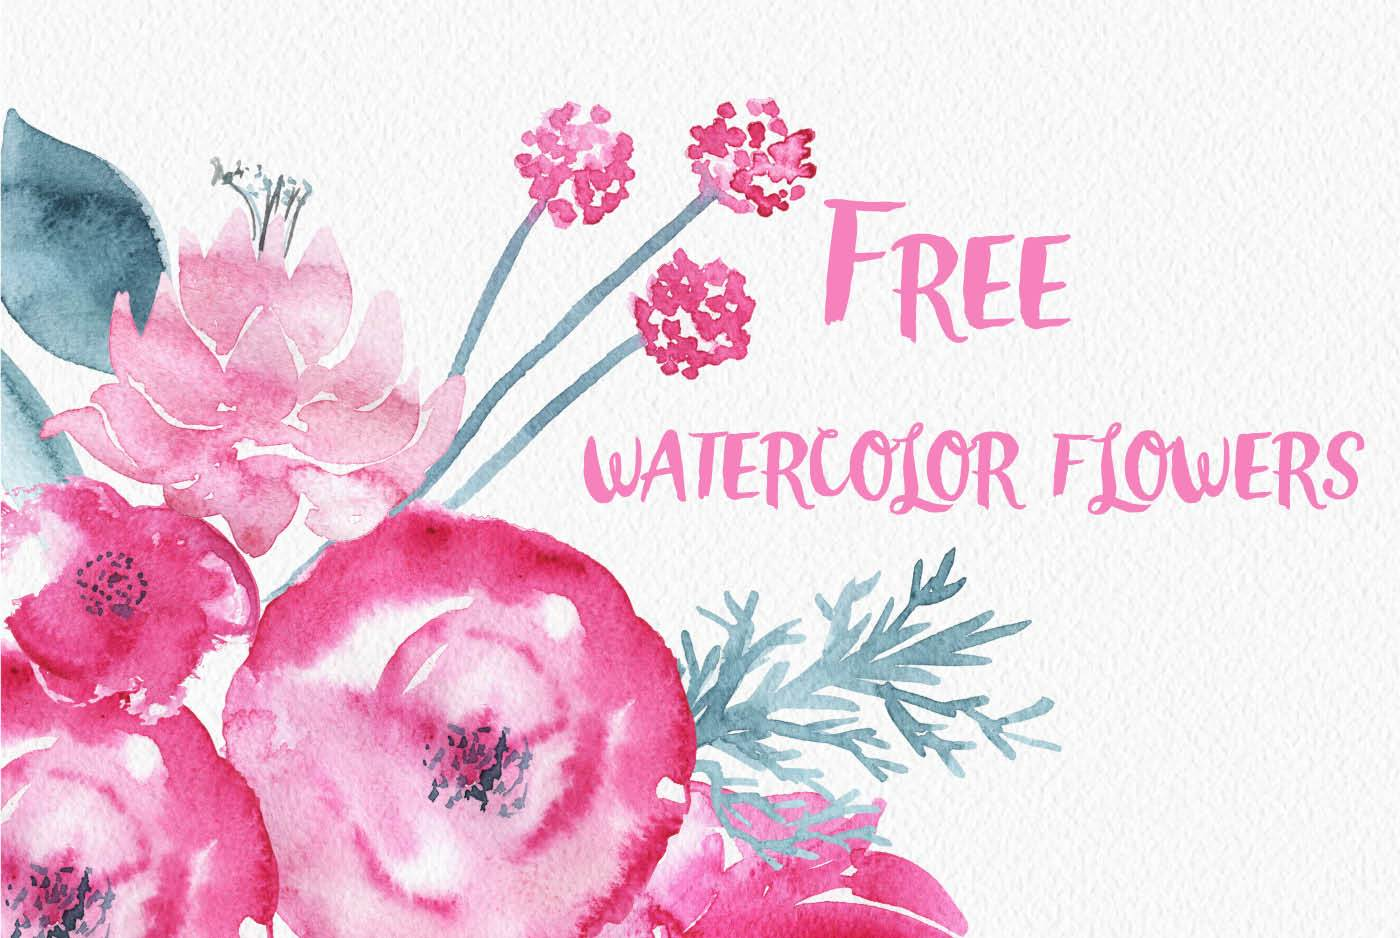 Free watercolor flowers clipart 5 » Clipart Portal.